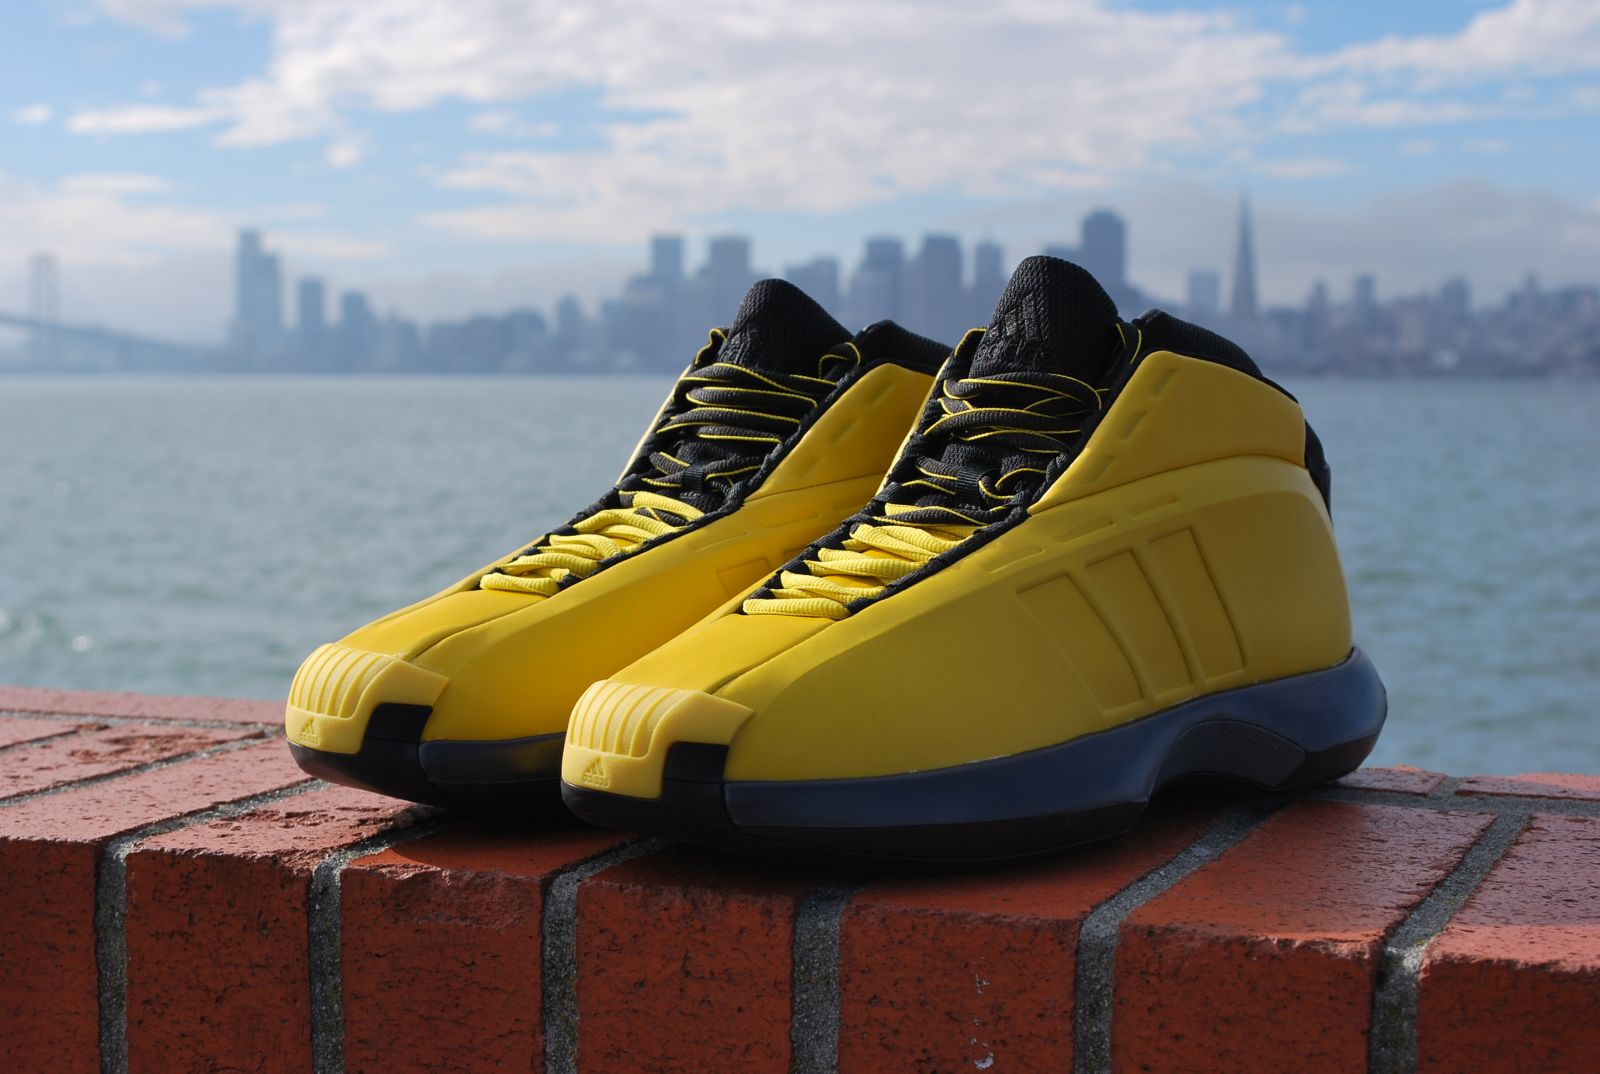 adidas Crazy 1 San Francisco skyline